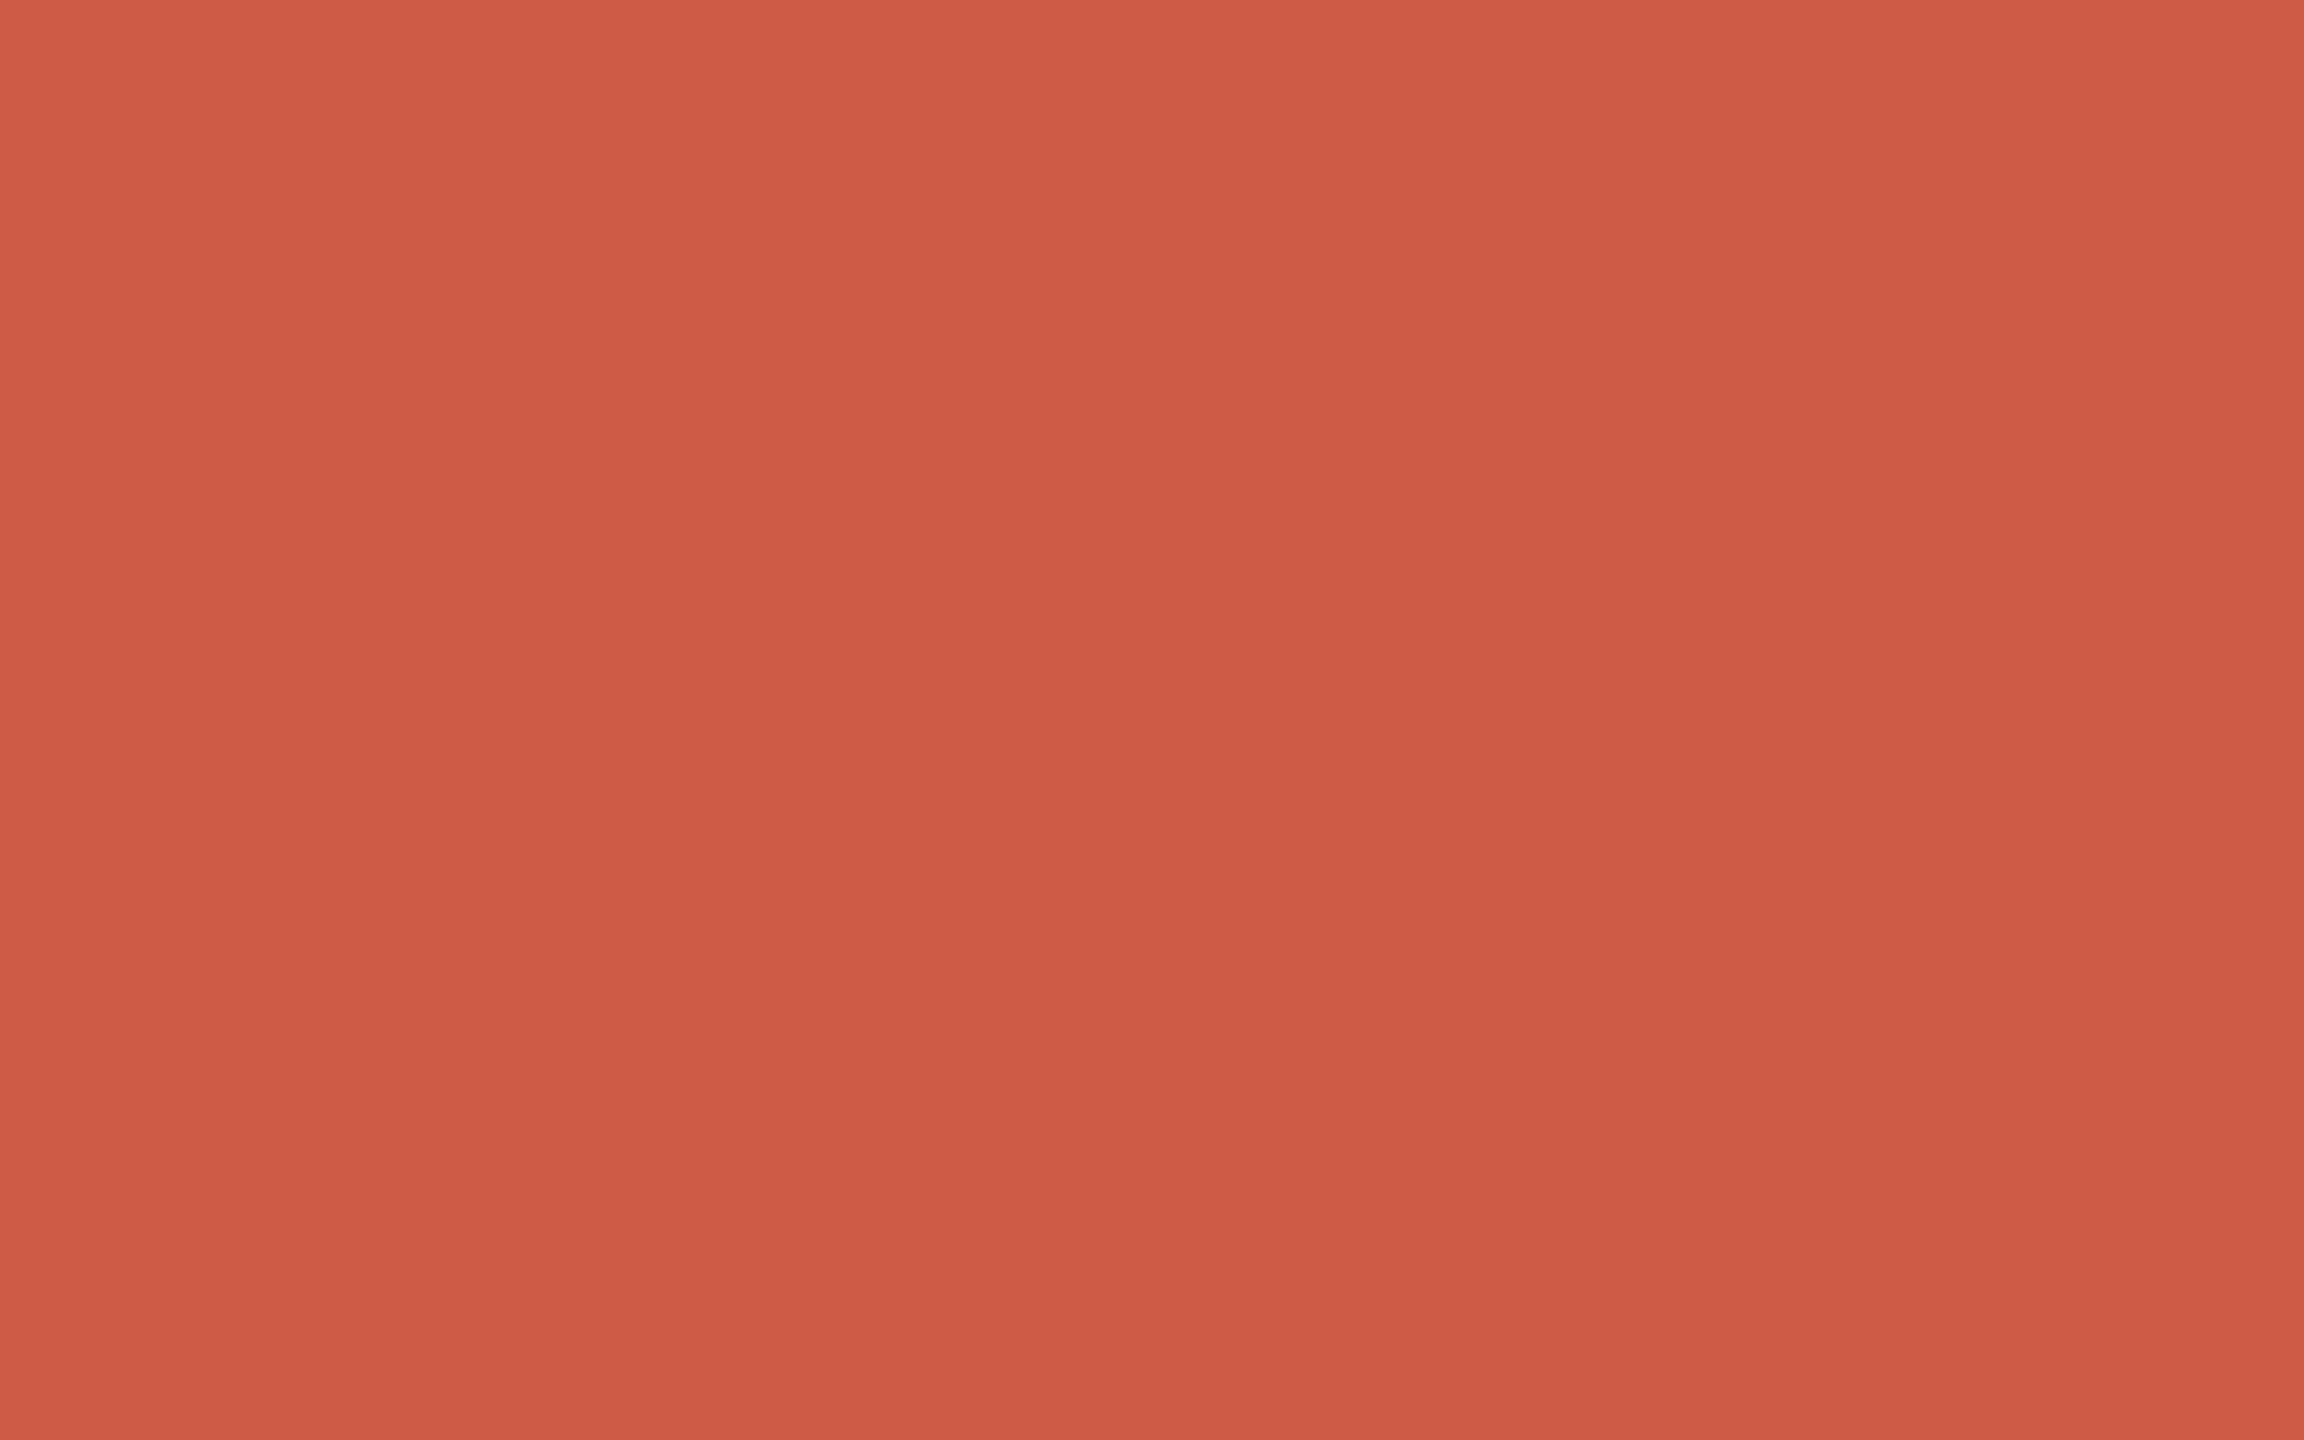 2304x1440 Dark Coral Solid Color Background